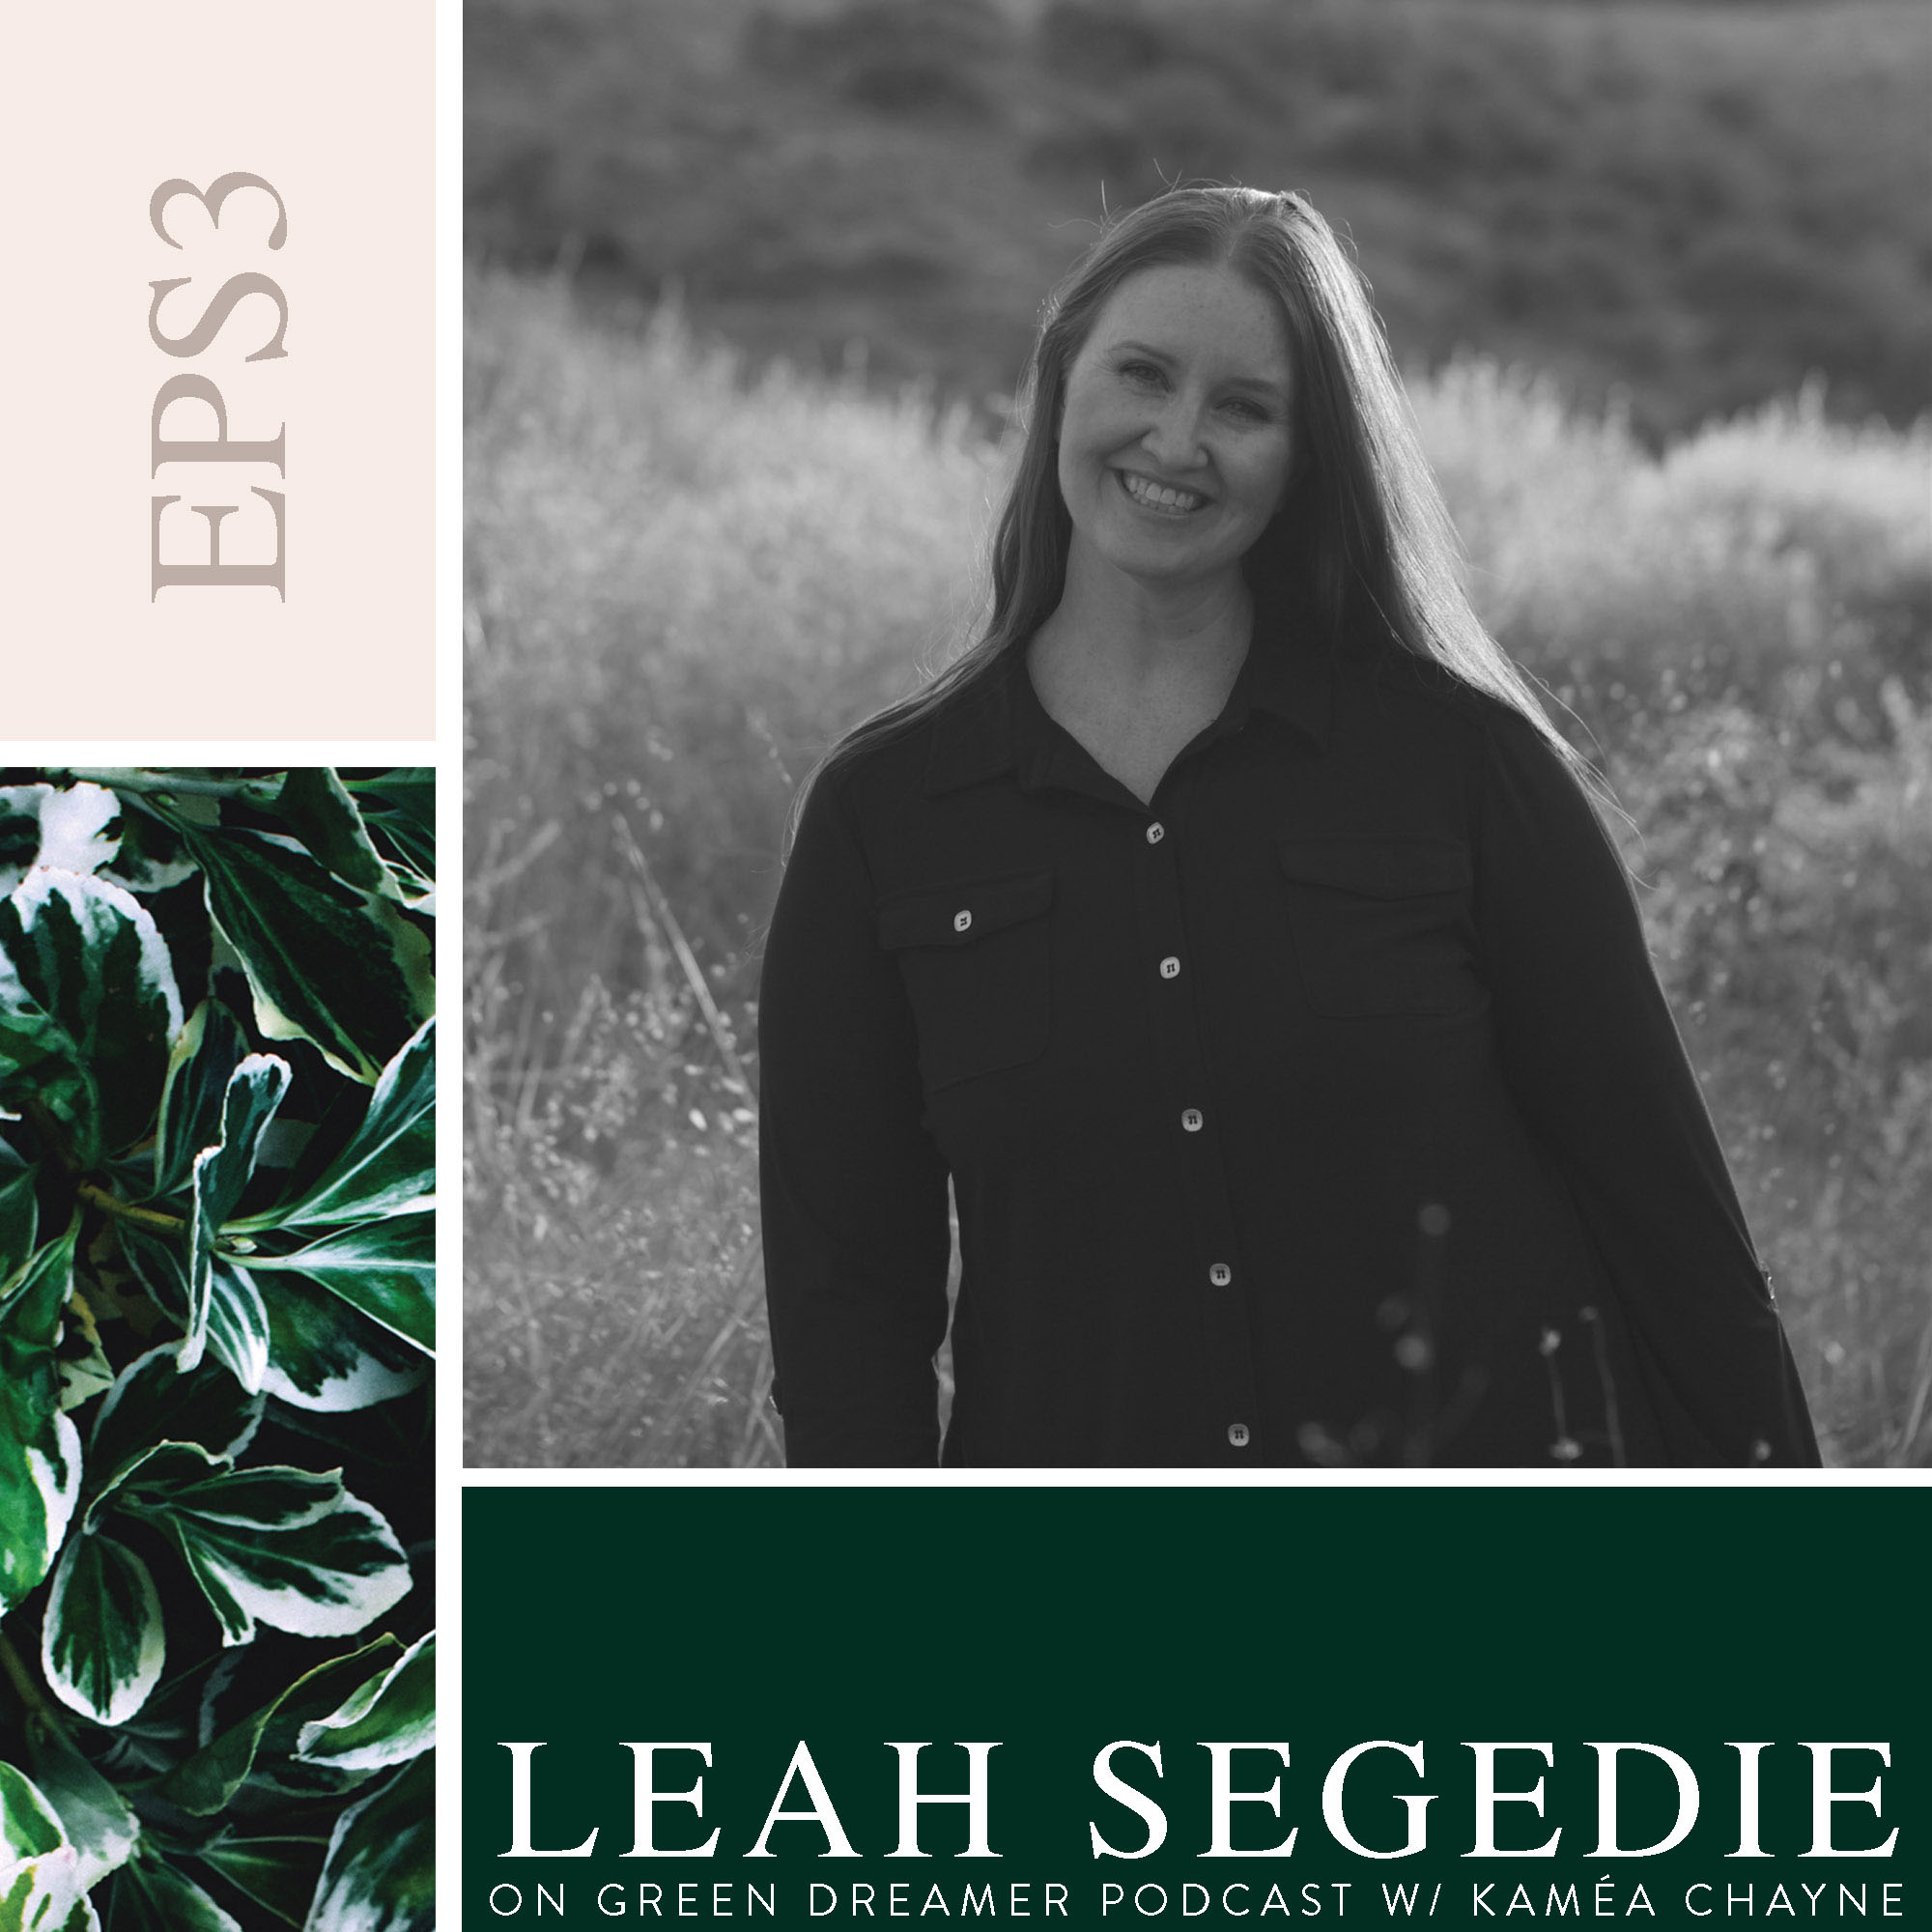 Leah Segedie on Sustainability via Green Dreamer Podcast with Kaméa Chayne